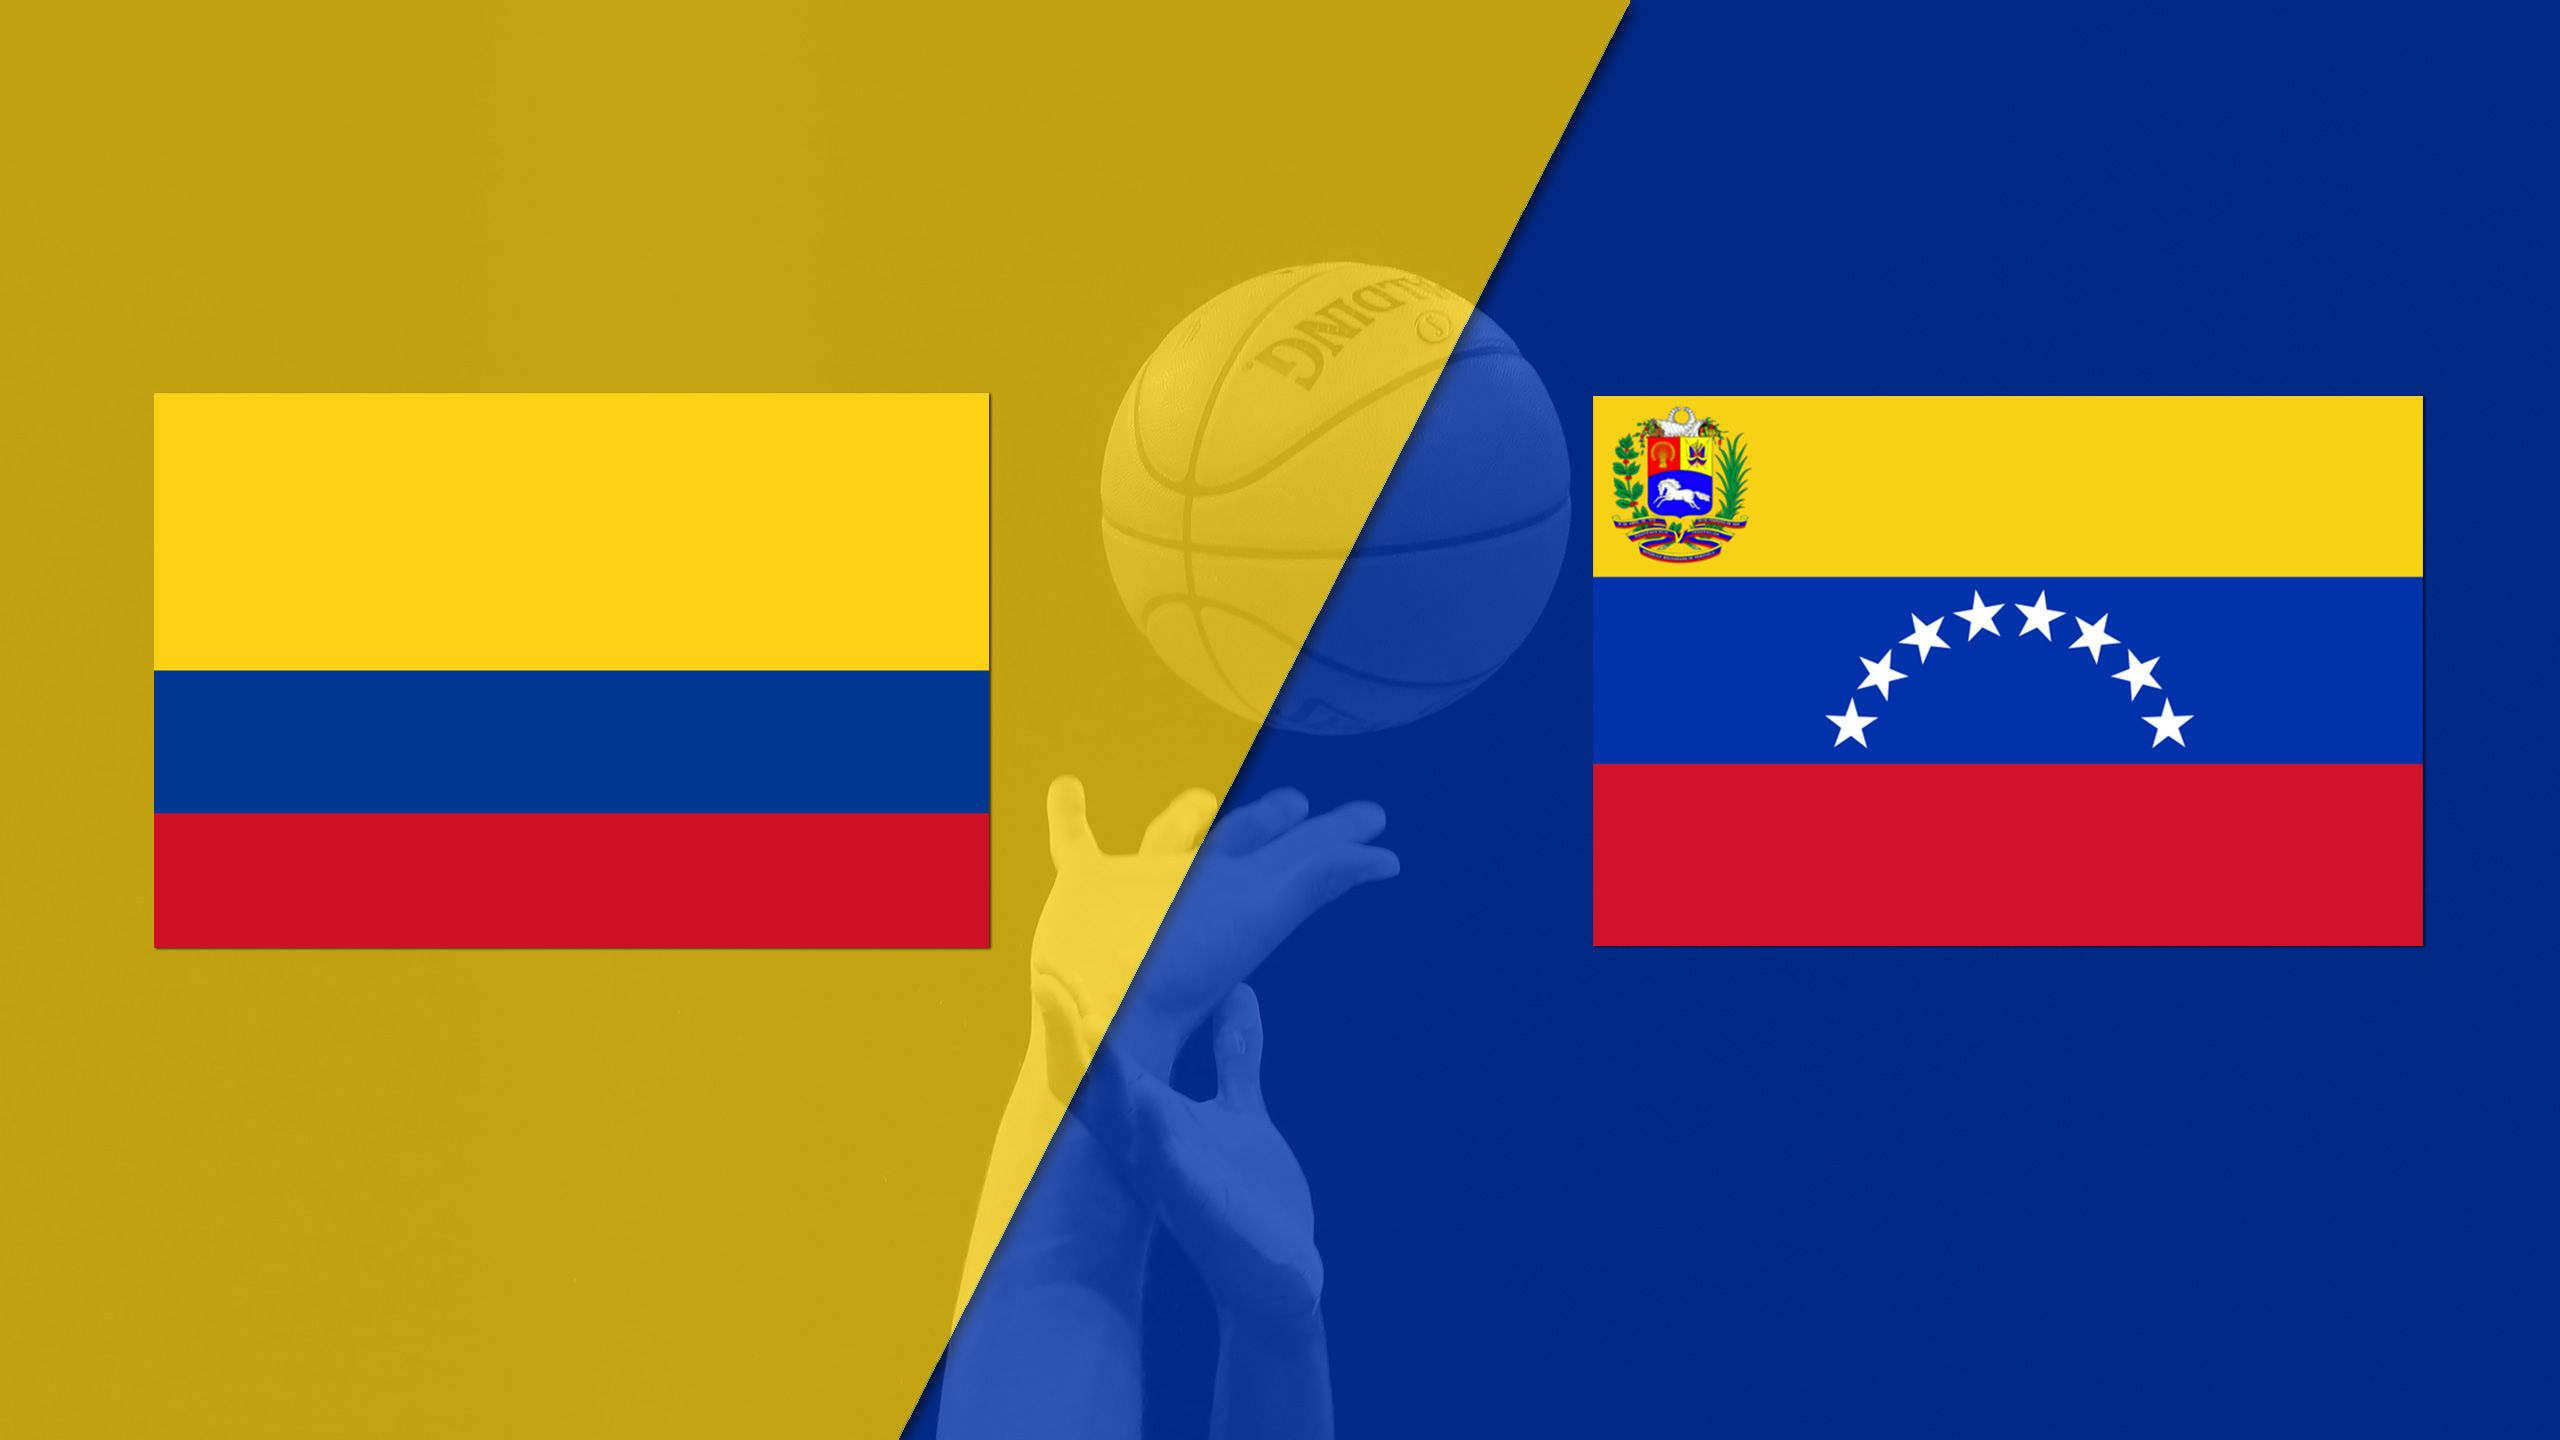 Colombia vs. Venezuela (FIBA World Cup 2019 Qualifier)